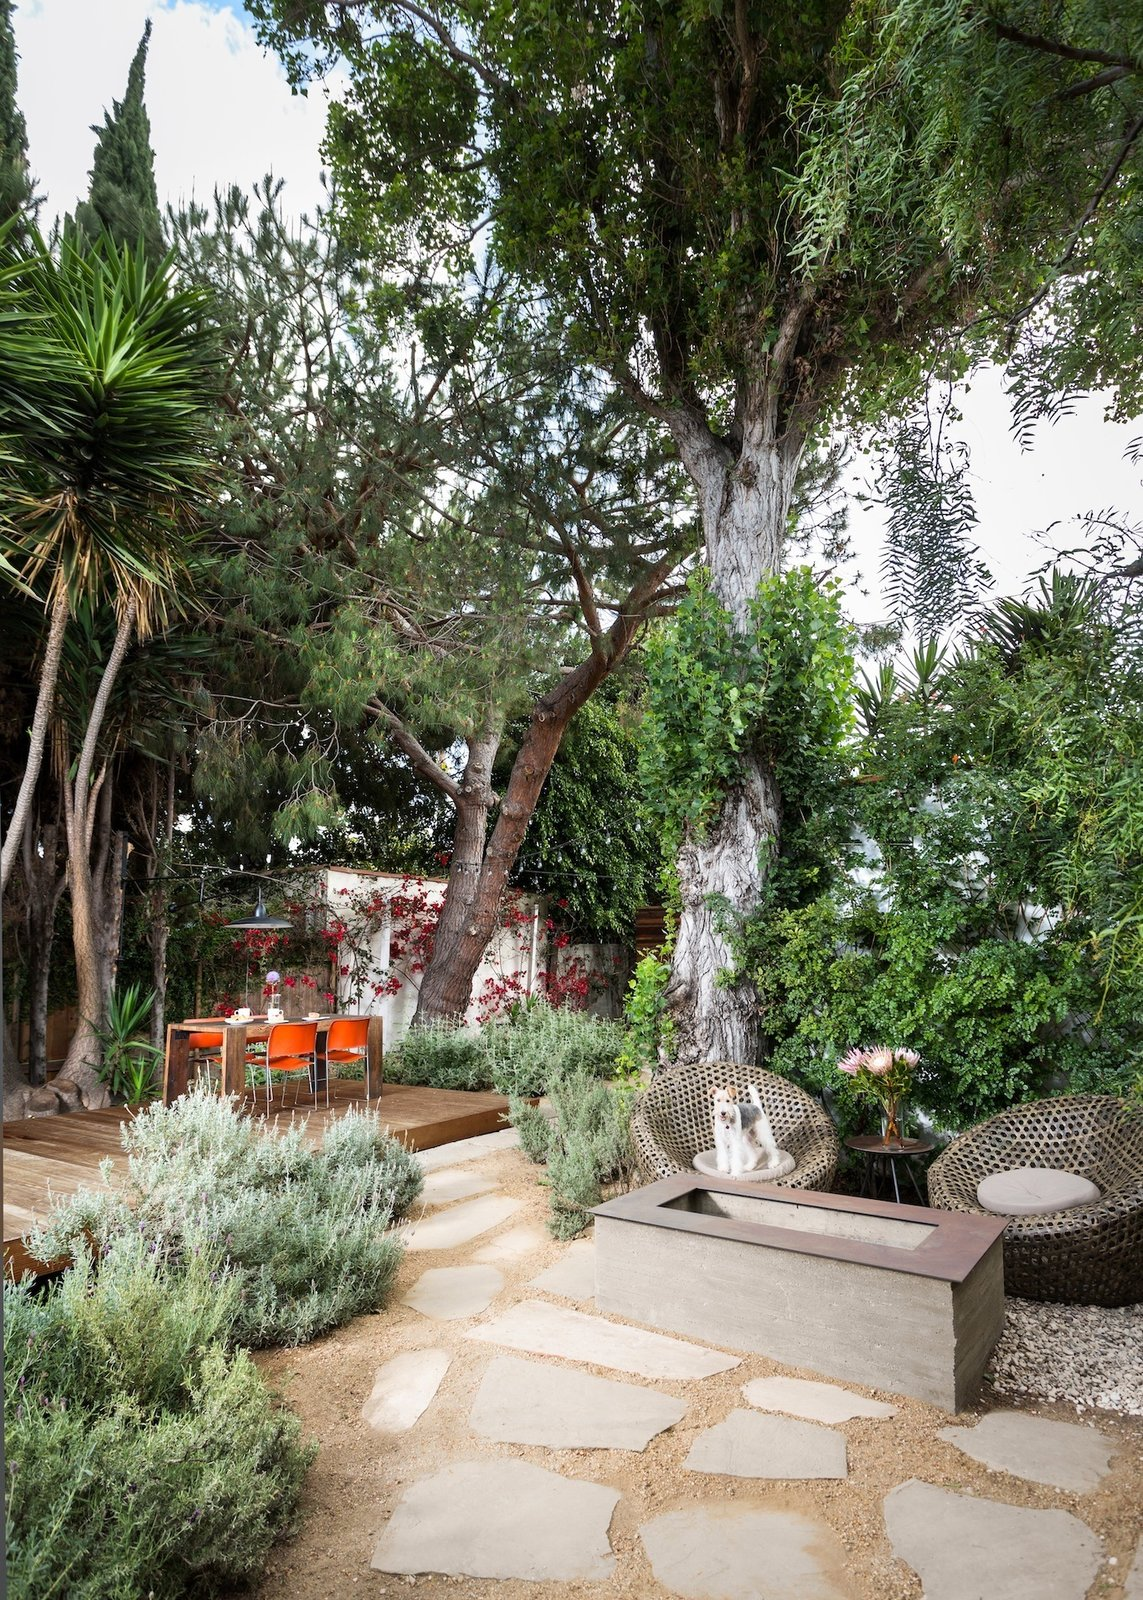 Outdoor, Desert, Garden, Trees, Back Yard, Shrubs, Hardscapes, Gardens, Large, Wood, Flowers, Decomposed Granite, Walkways, Decking, Pavers, Wood, and Hanging Firepit and wire fox terrier with hardscape and landscape to exterior dining terrace at raised deck beyond  Outdoor Desert Shrubs Garden Hanging Pavers Photos from Boise Residence